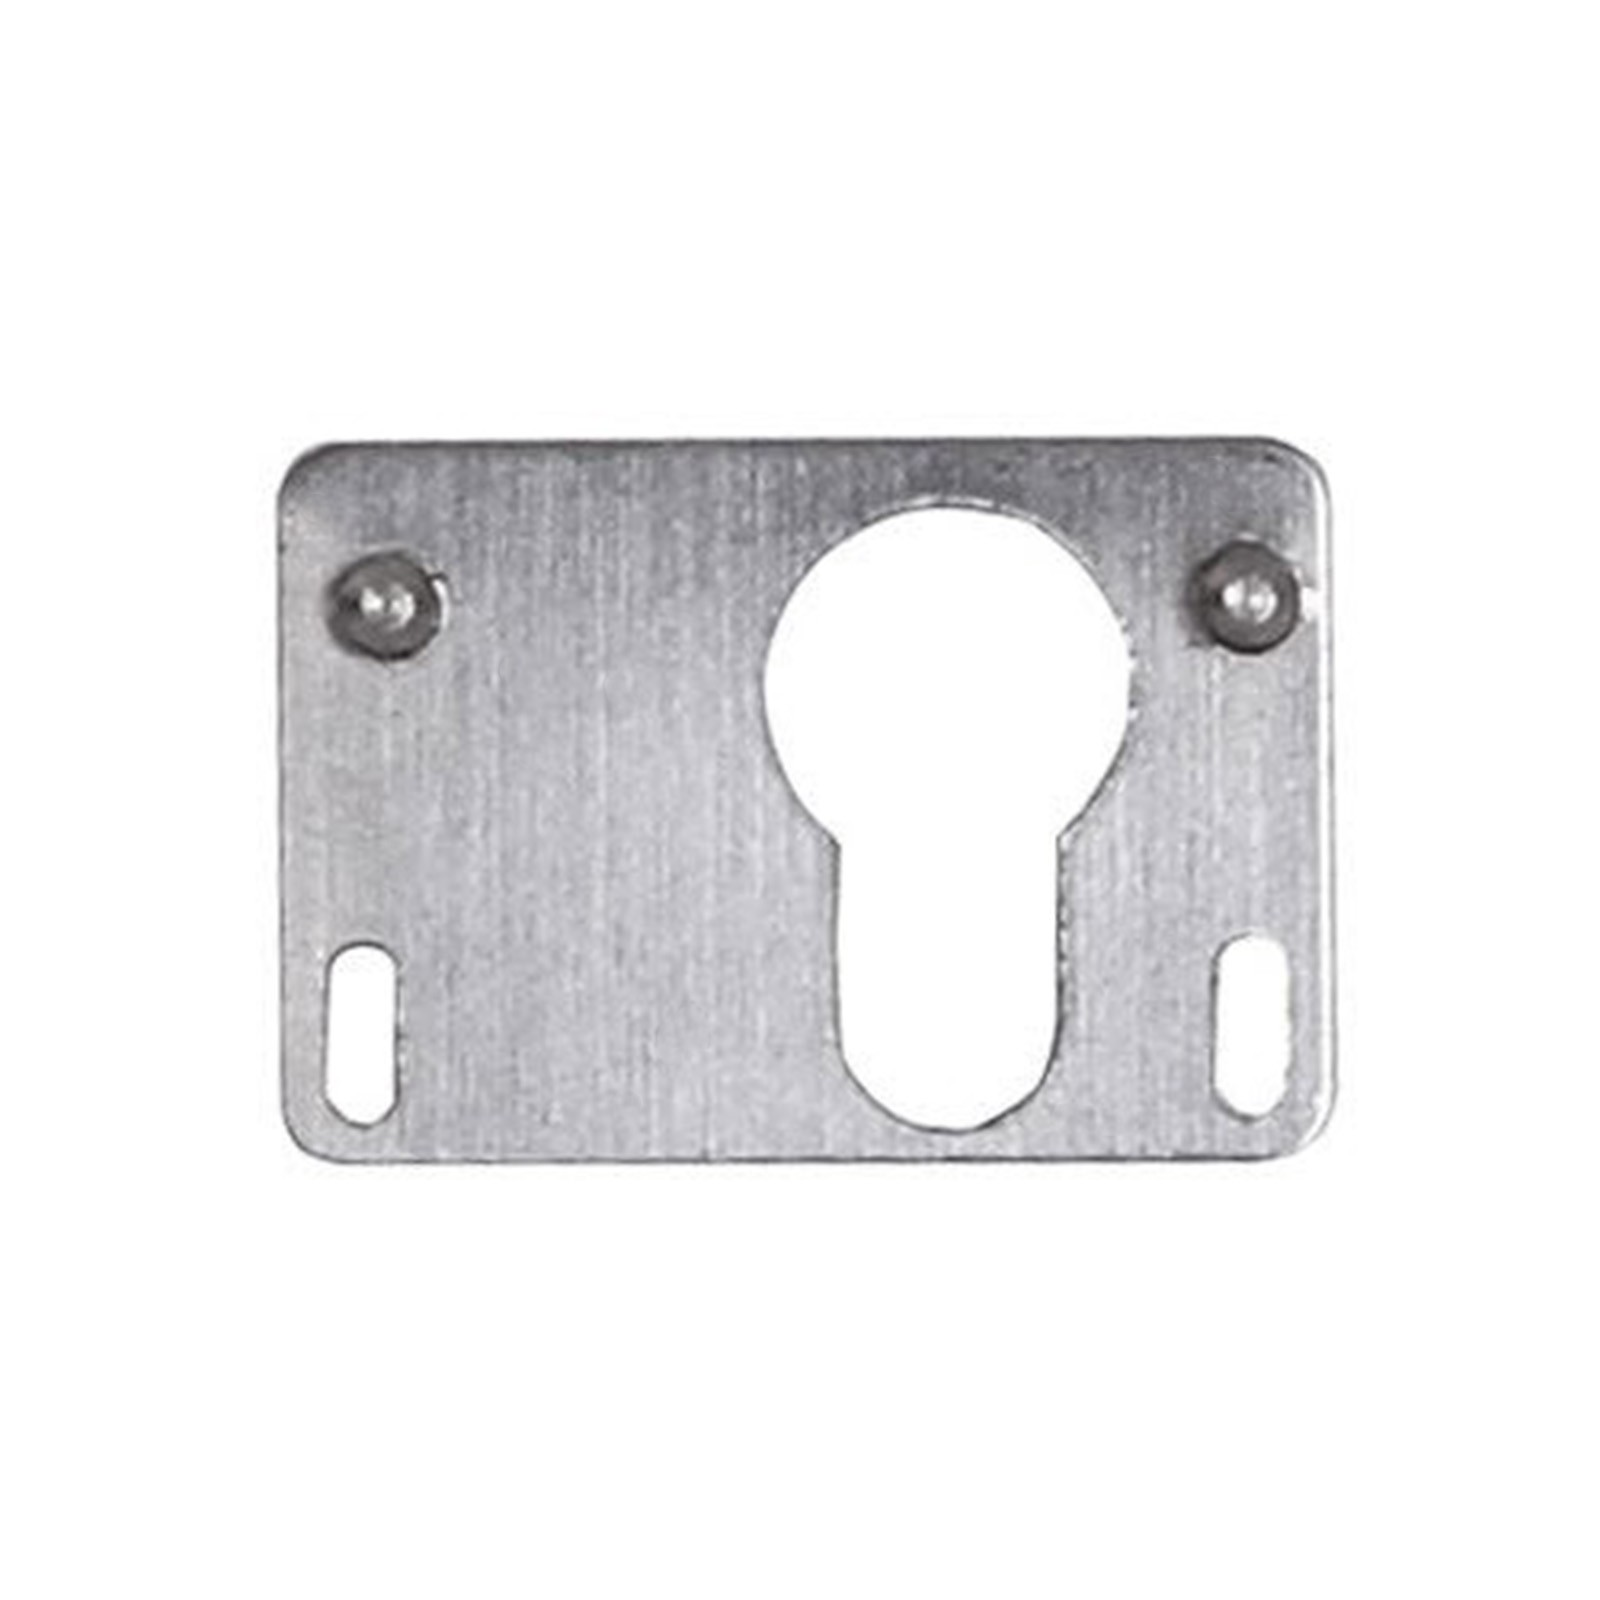 5x Front Camera Metal Holder Bracket Replacement for iPad 3 4